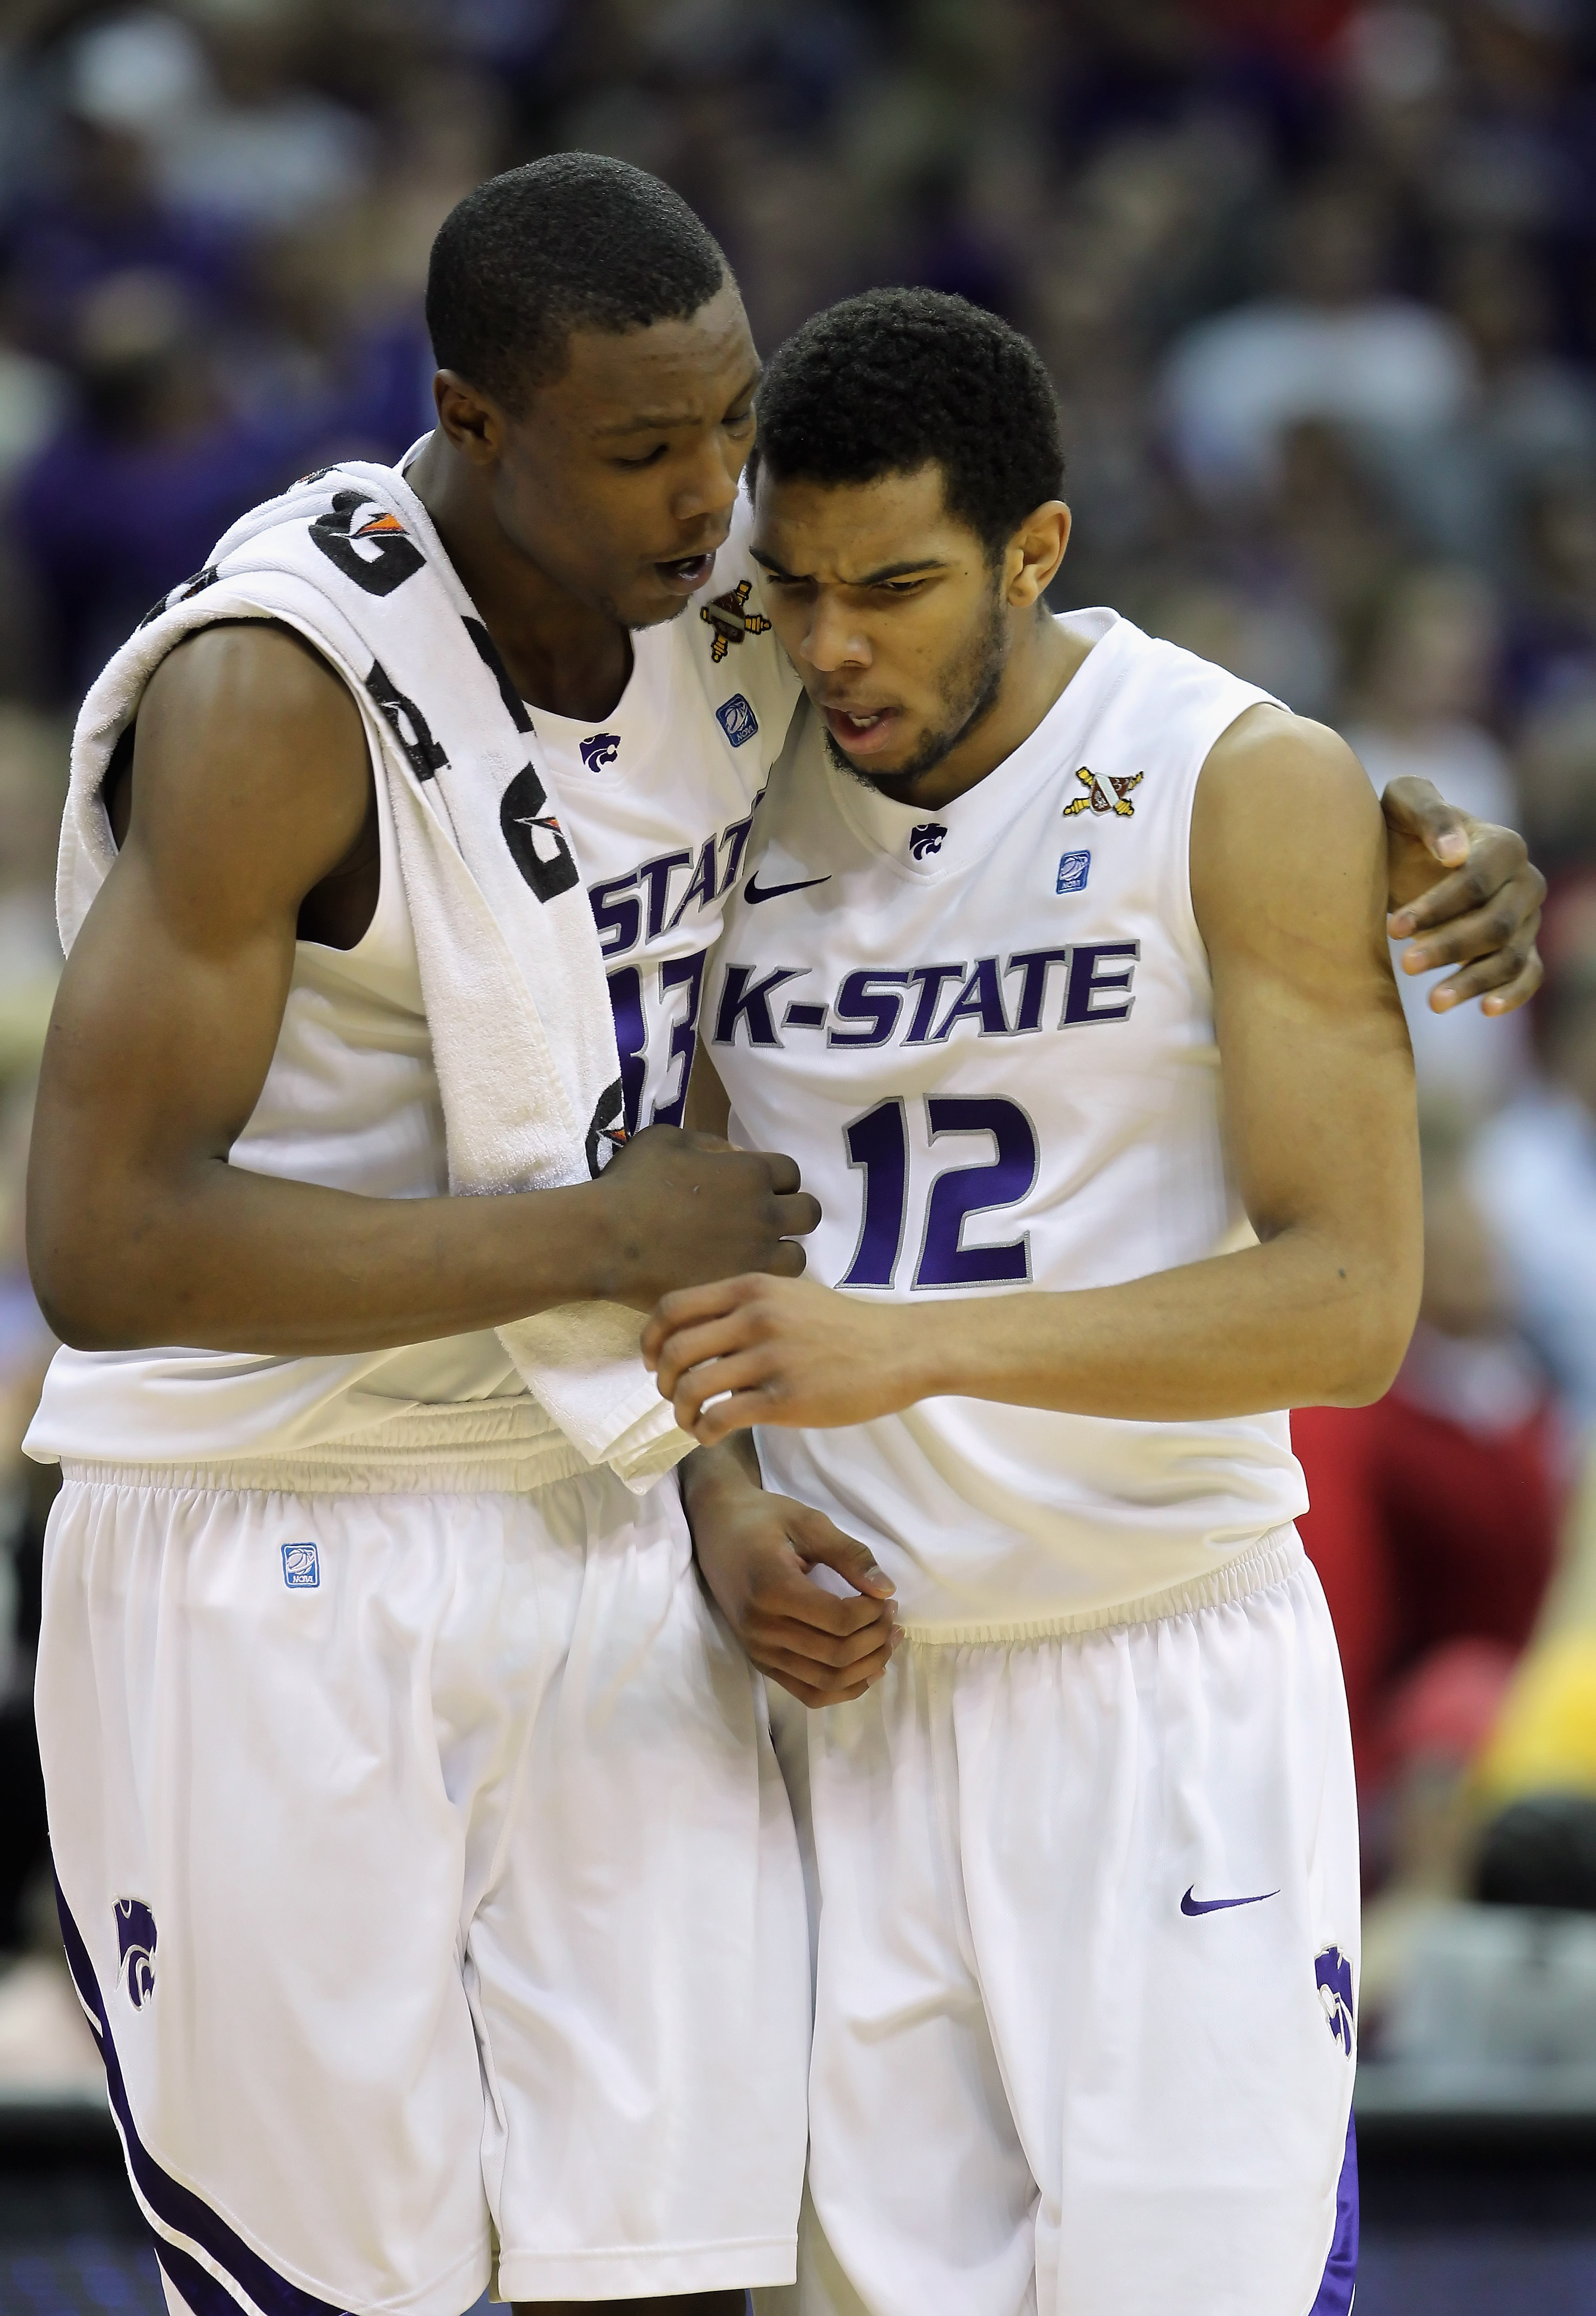 KANSAS CITY, MO - DECEMBER 21:  Nick Russell #12 of the Kansas State Wildcats is hugged by Wally Judge #33 during the game against the UNLV Rebels on December 21, 2010 at the Sprint Center in Kansas City, Missouri.  (Photo by Jamie Squire/Getty Images)